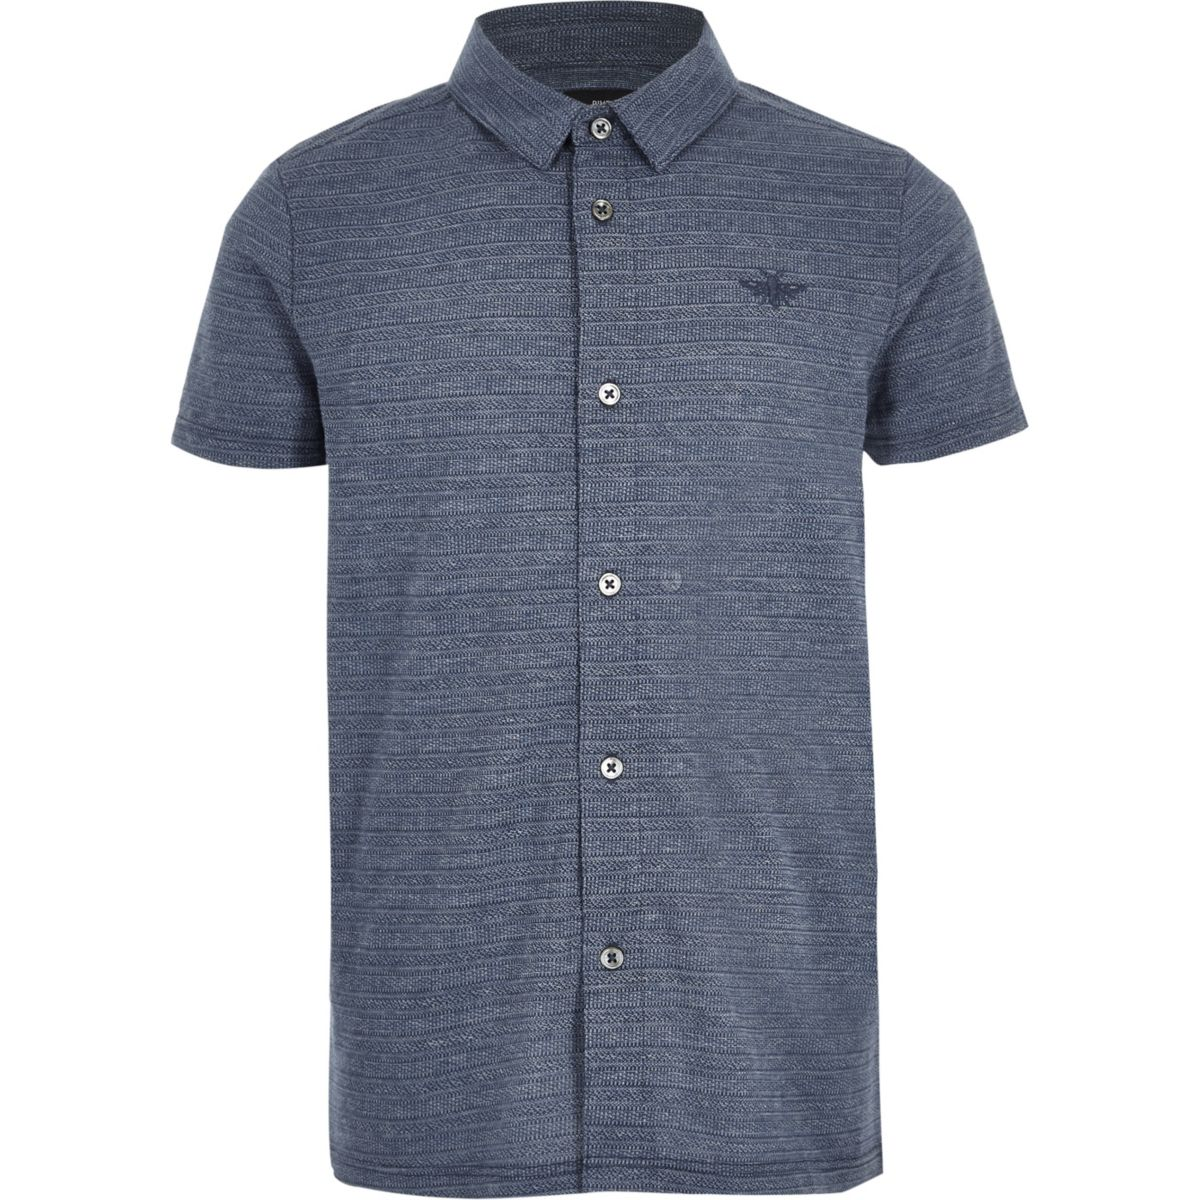 Boys blue pique textured button-up polo shirt